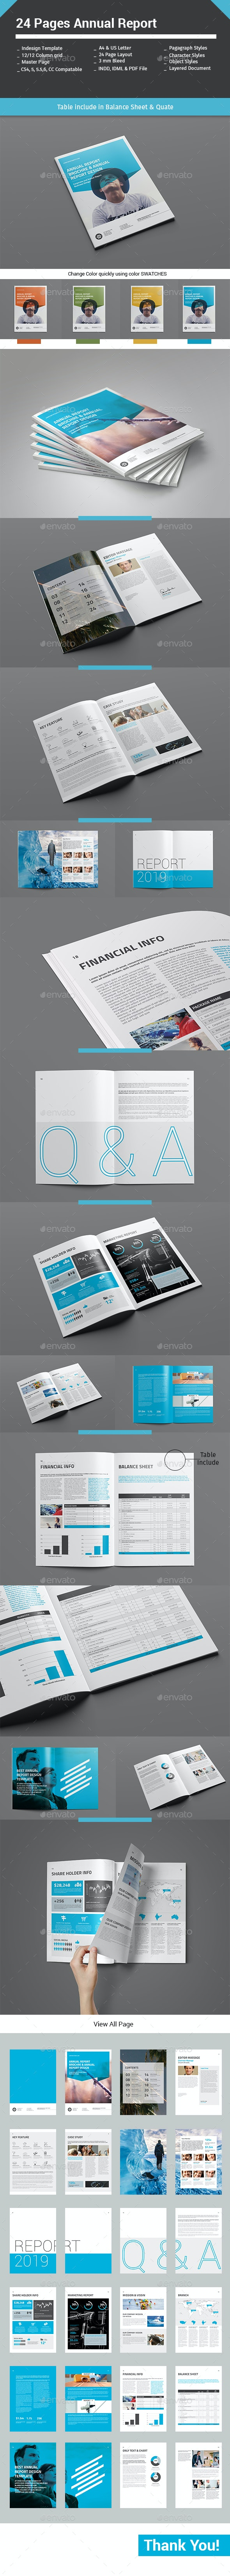 24 Pages Annual Report - Informational Brochures